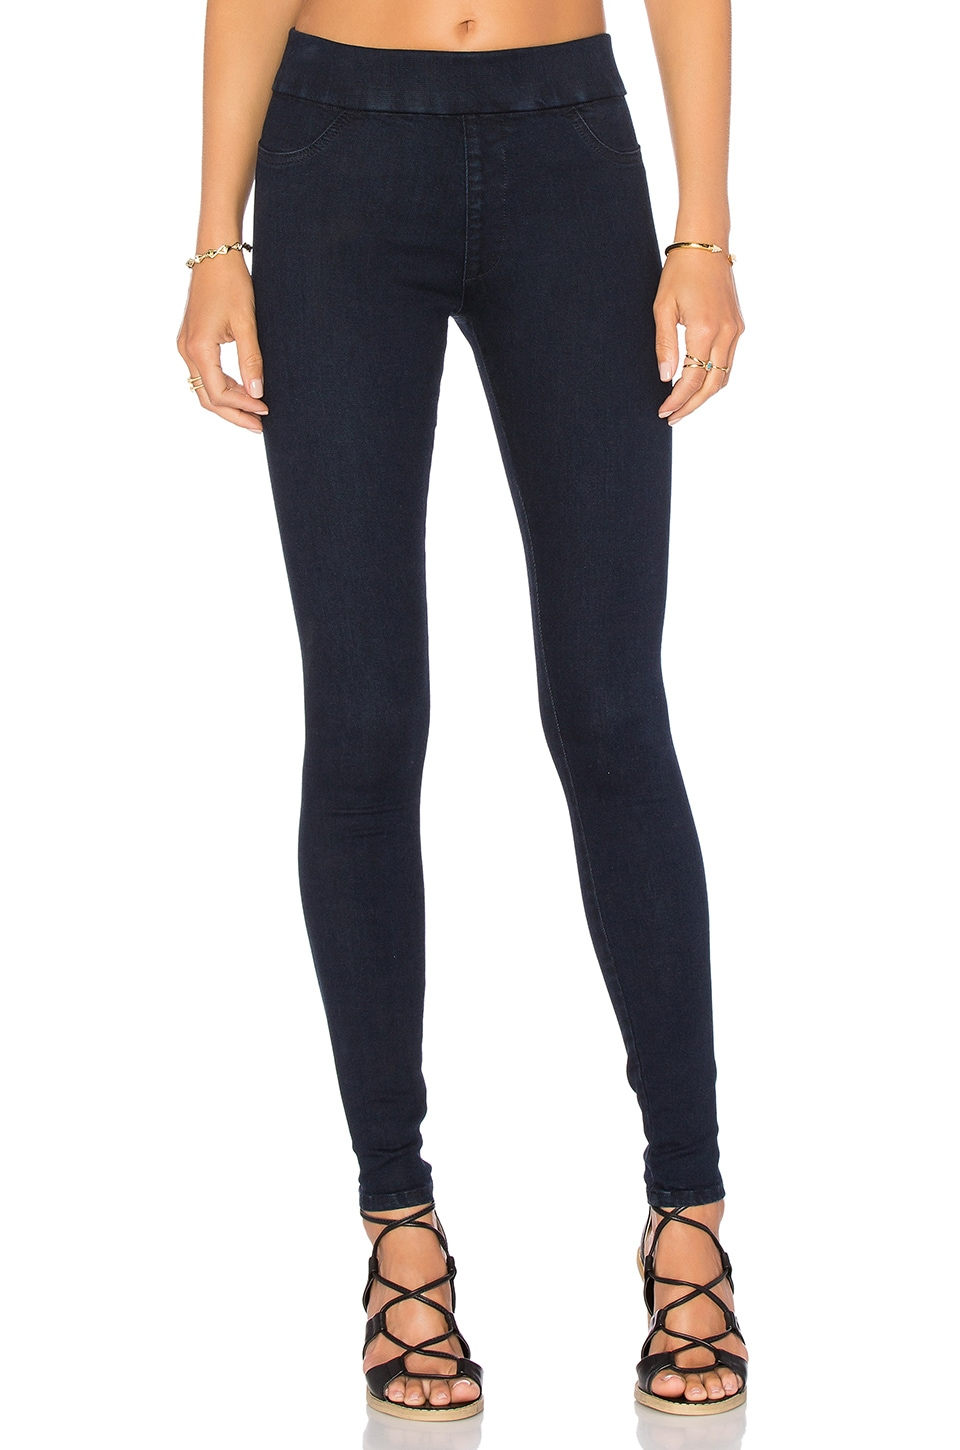 Twiggy Slip On Legging by James Jeans